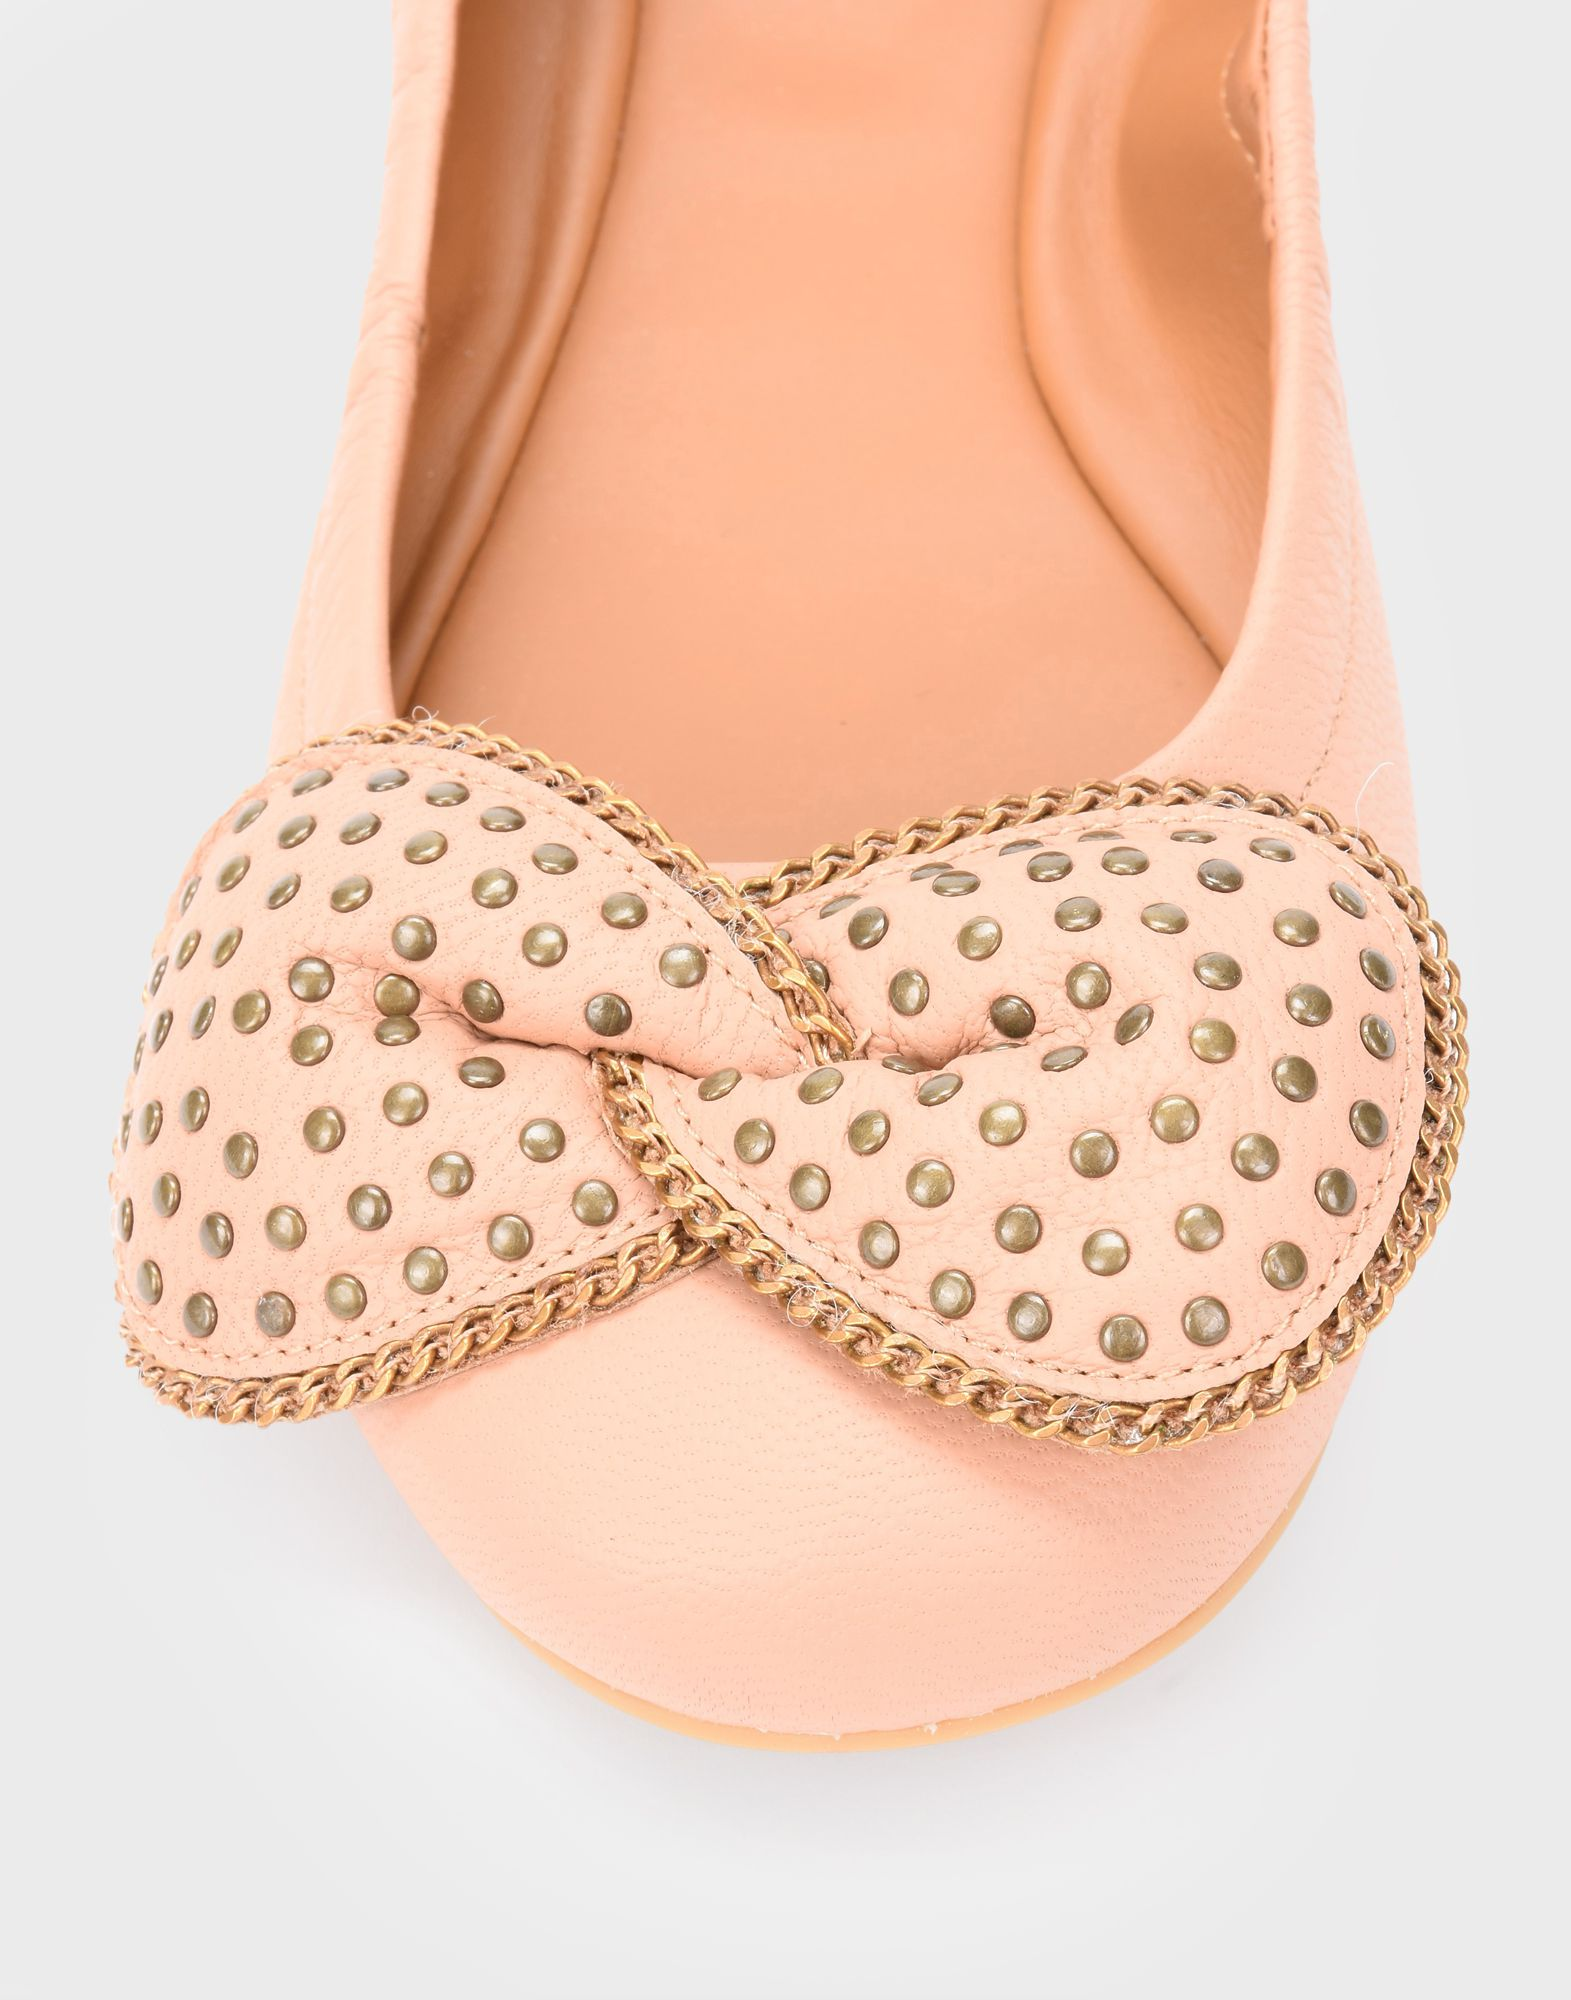 Ballerines See By Chloé Femme - Ballerines See By Chloé sur